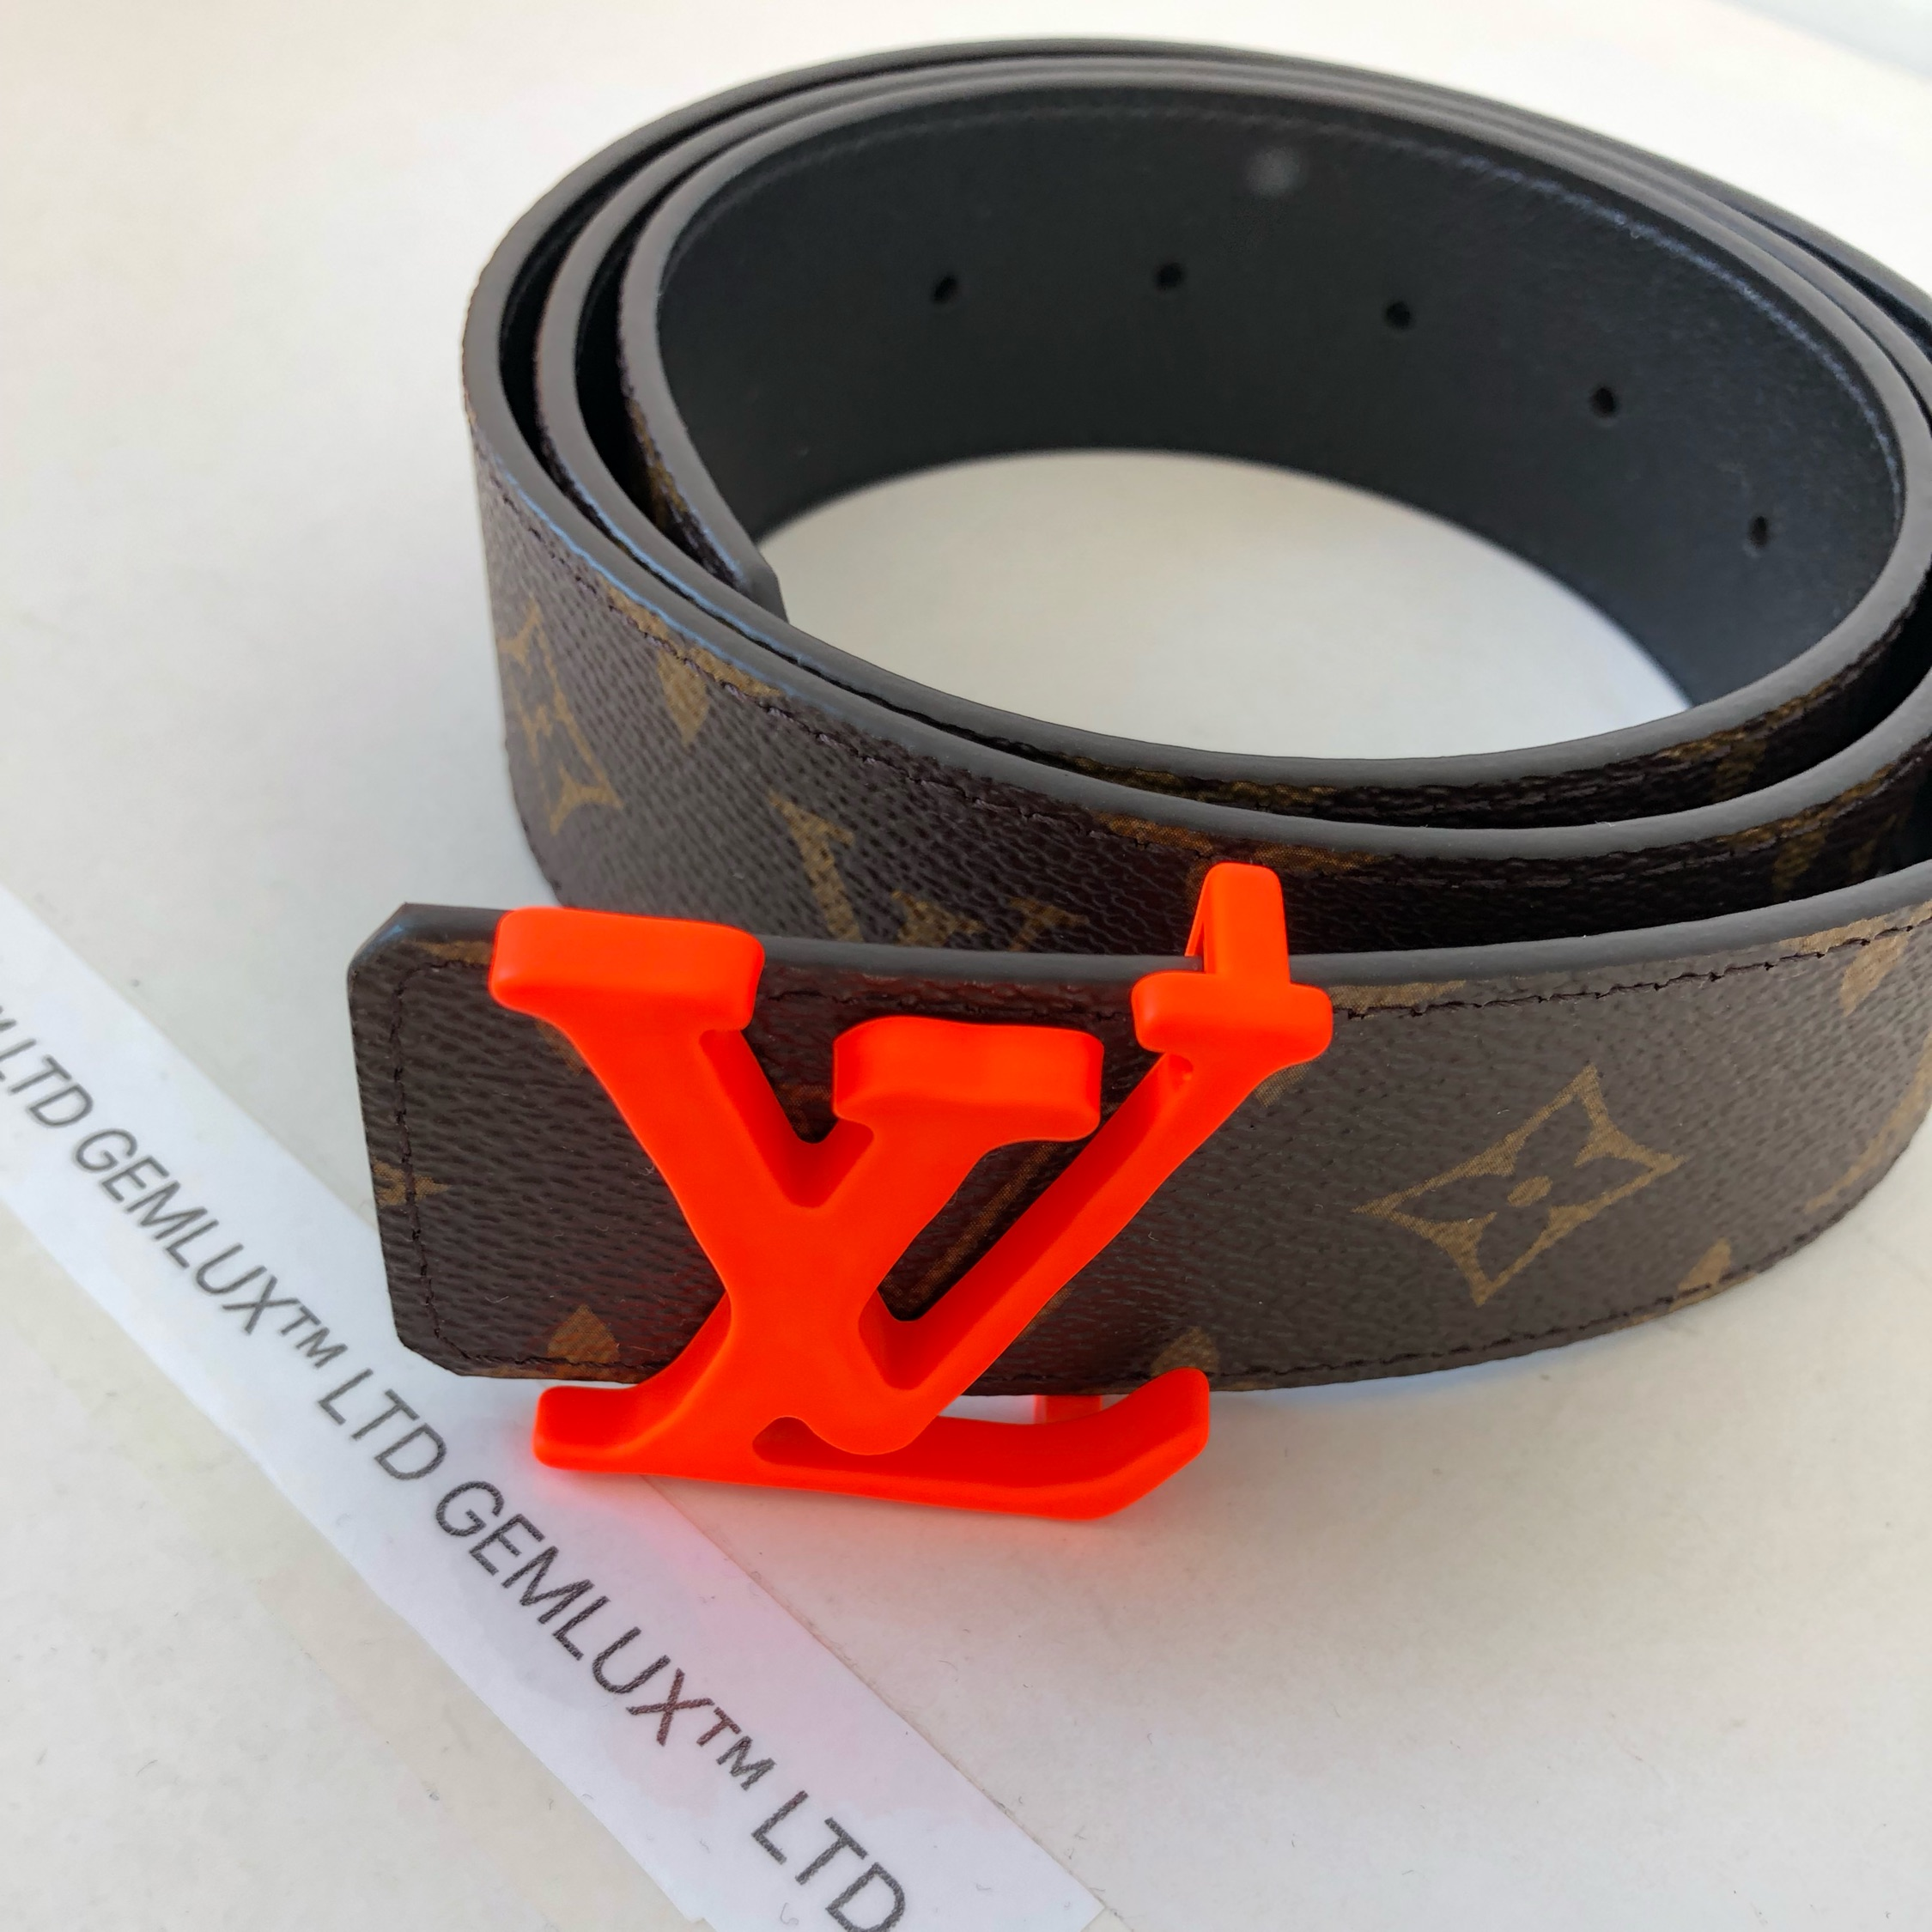 07caa0eaad4 Louis Vuitton Buckle 40Mm Belt 95 Virgil Abloh